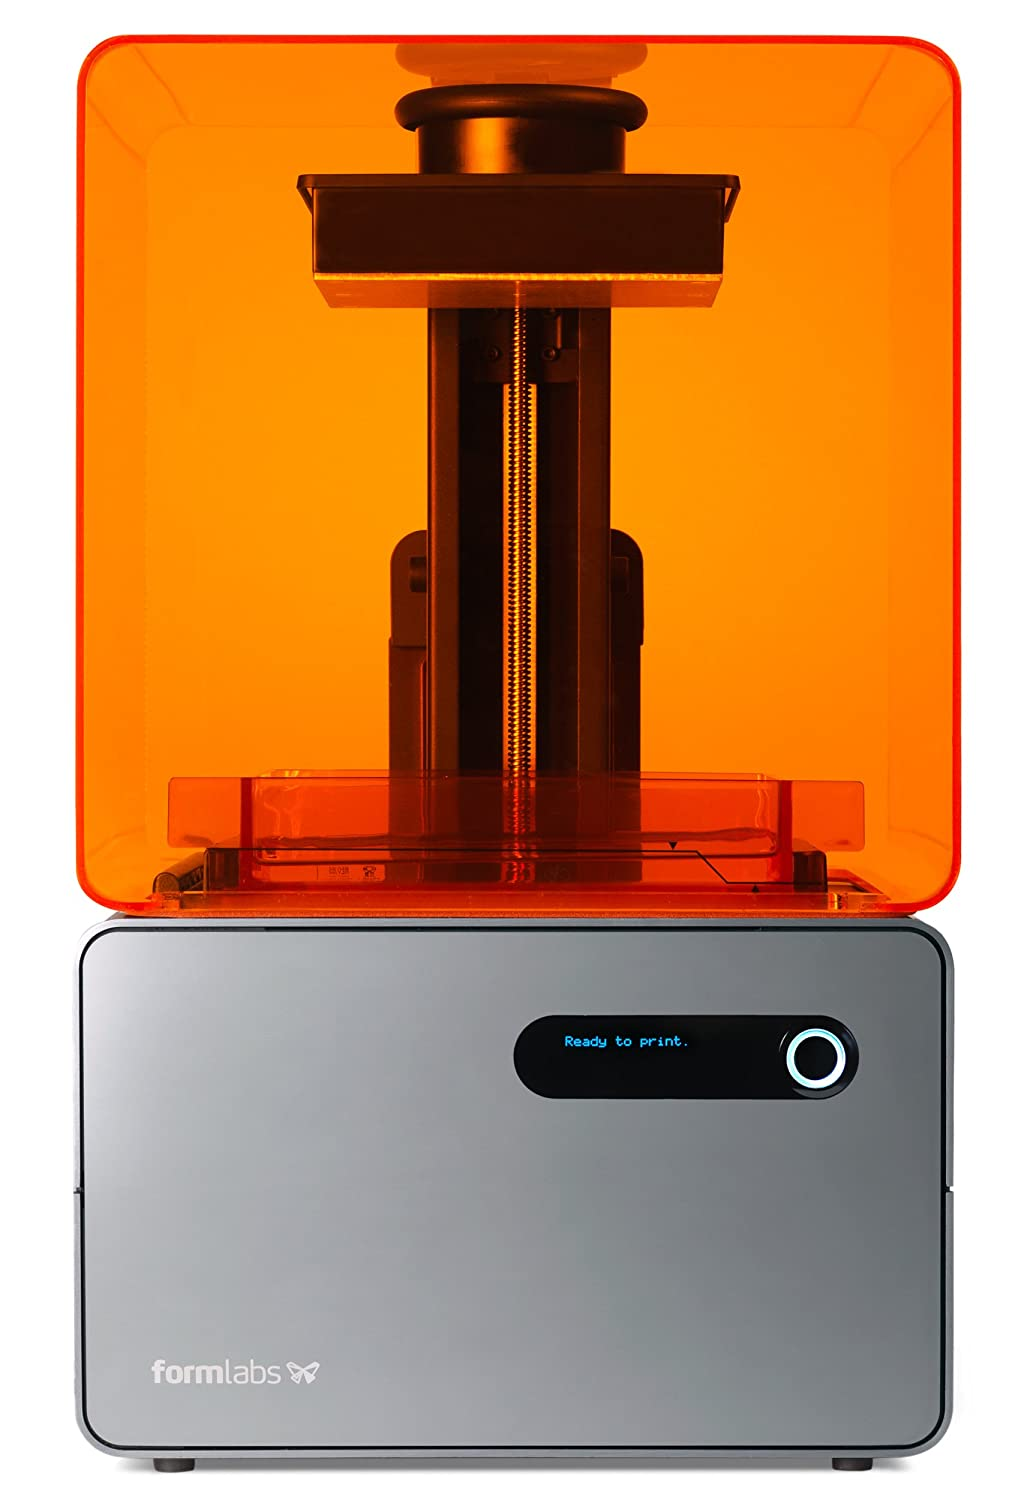 Top 12 Best 3d Printers 2019 For Professionals Hobbyists Pc Power Box With E Fuse Oa3 Table Image